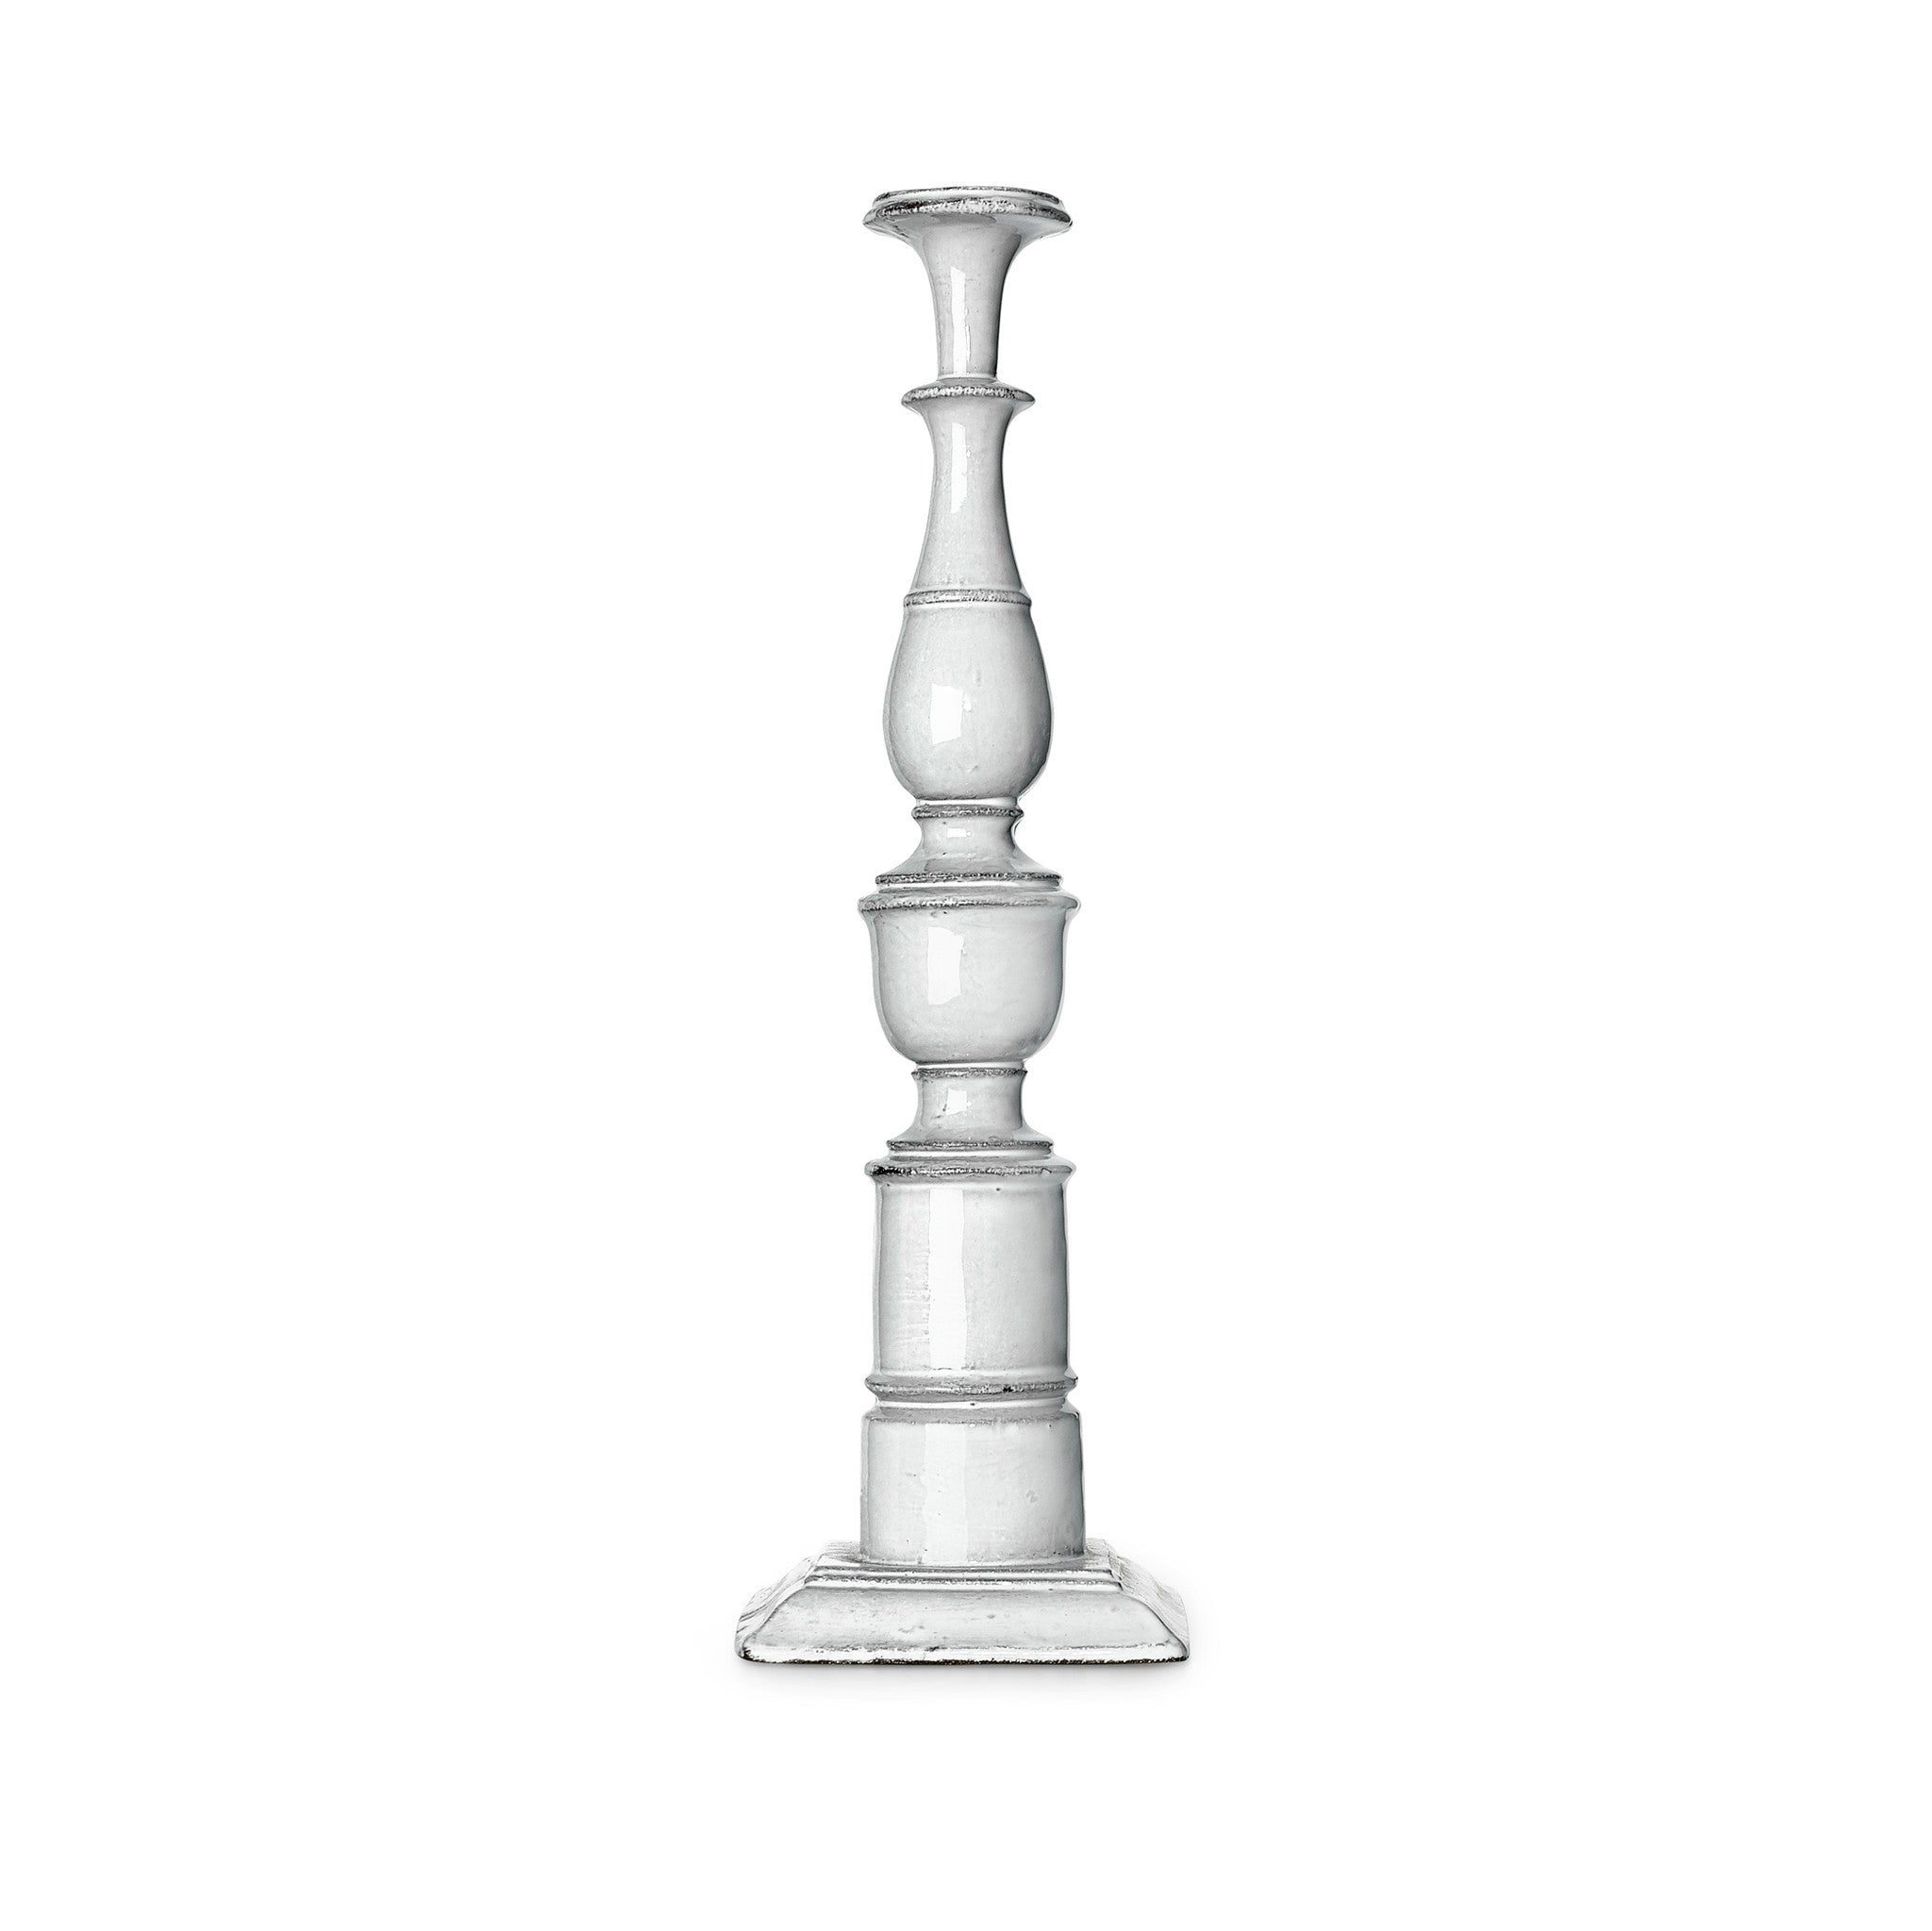 Pair of Amalfi Candlesticks By Astier de Villatte